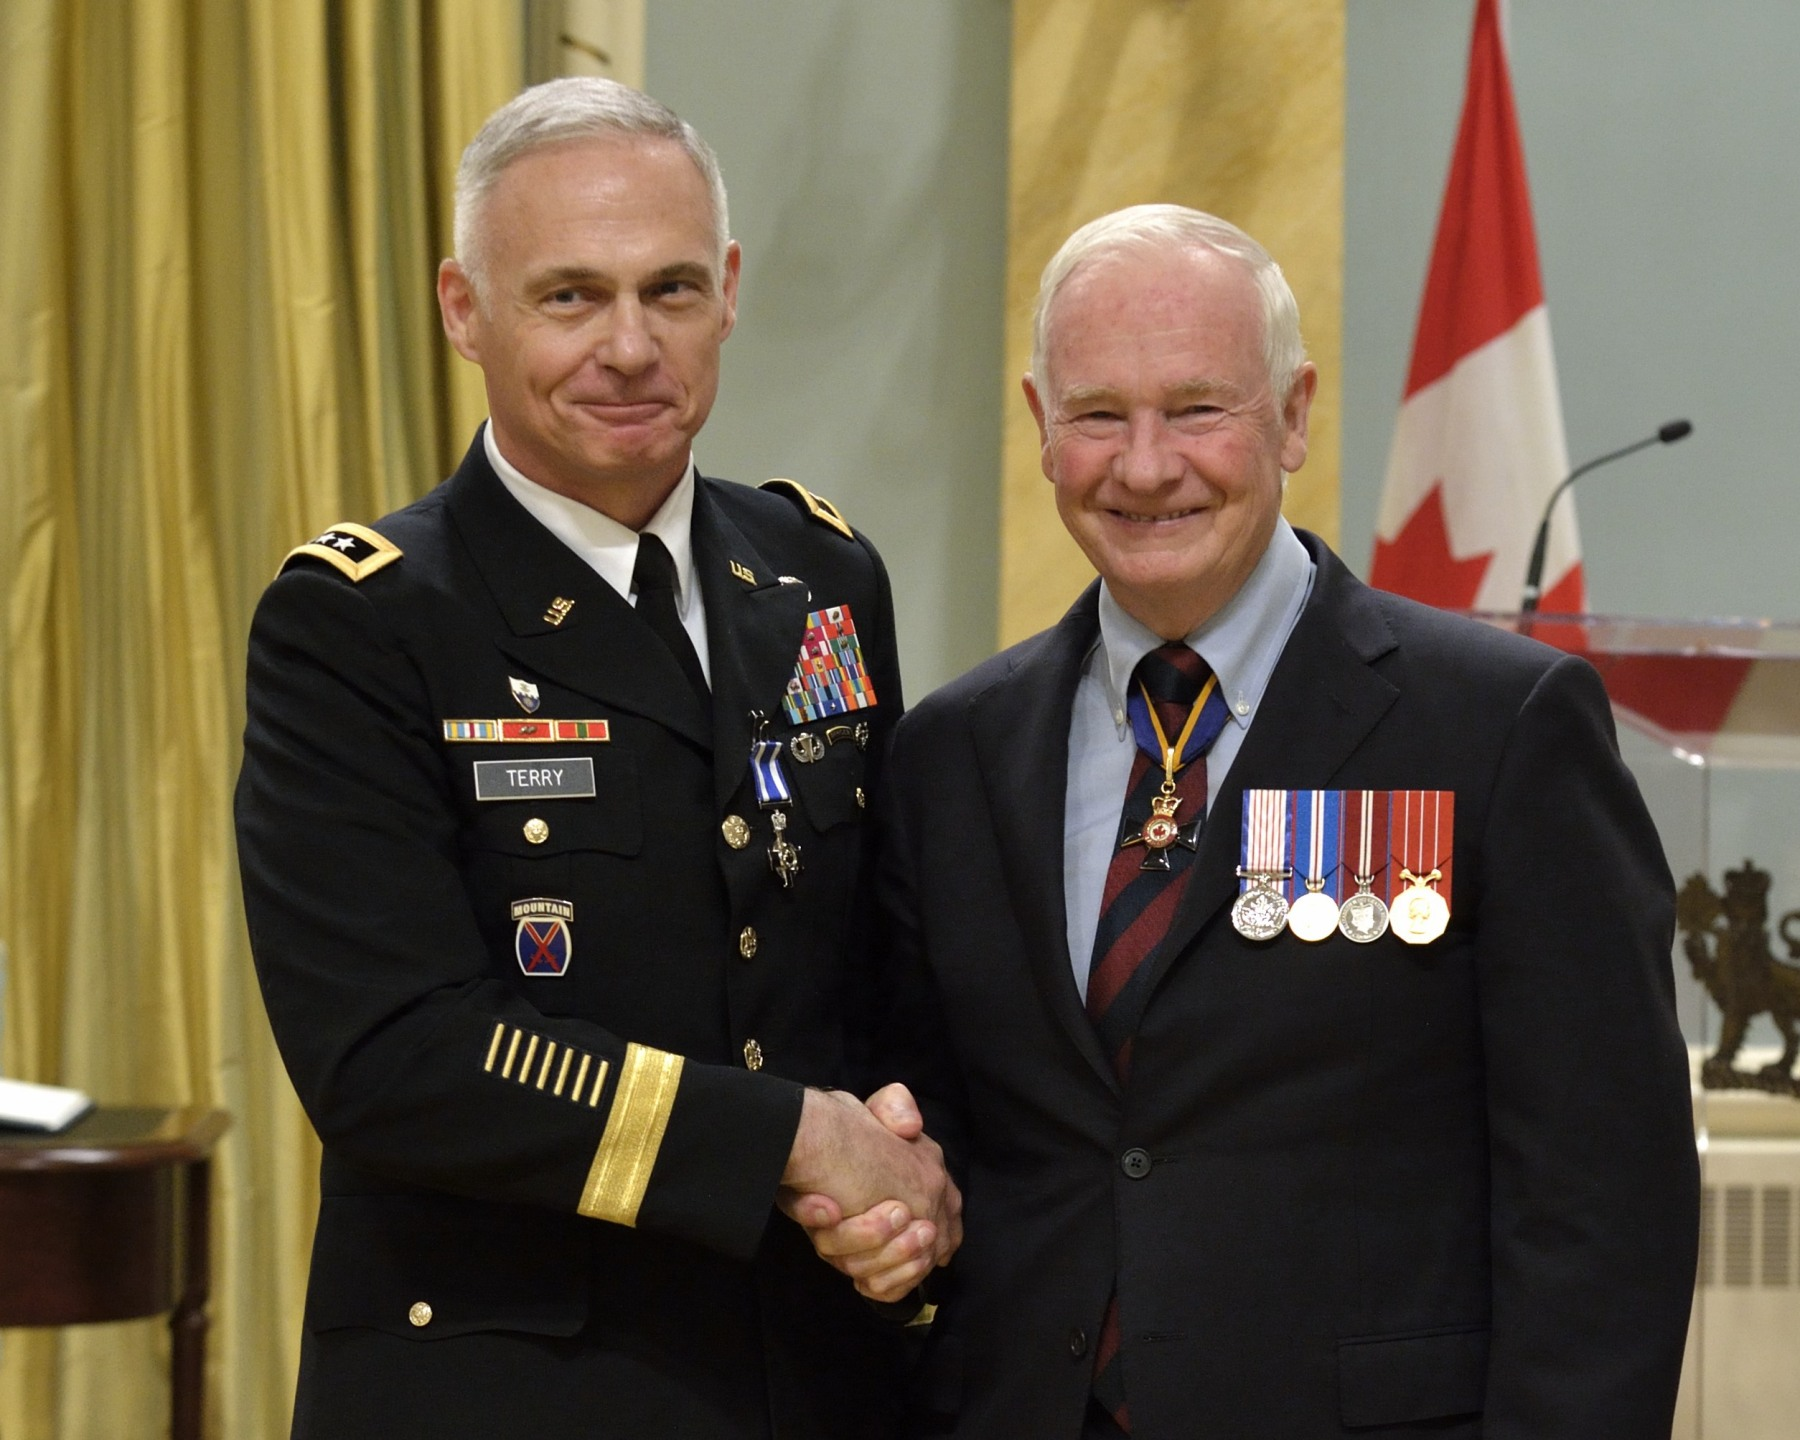 Lieutenant-General James Terry, M.S.C.(United States Army) received the Meritorious Service Cross (Military Division). Lieutenant-General Terry, of the United States Army, provided exceptional leadership and vision as the commanding general of Regional Command (South) in Afghanistan from November 2010 to October 2011.  His support for Canada's mission and Canadian soldiers on the ground was critical to the Canadian Armed Forces' operational success. A steadfast ally, Lieutenant-General Terry widely promoted the significance of the Canadian contribution, highlighting its role in bringing stability to Afghanistan and helping maintain the Canadian Armed Forces' legacy there.